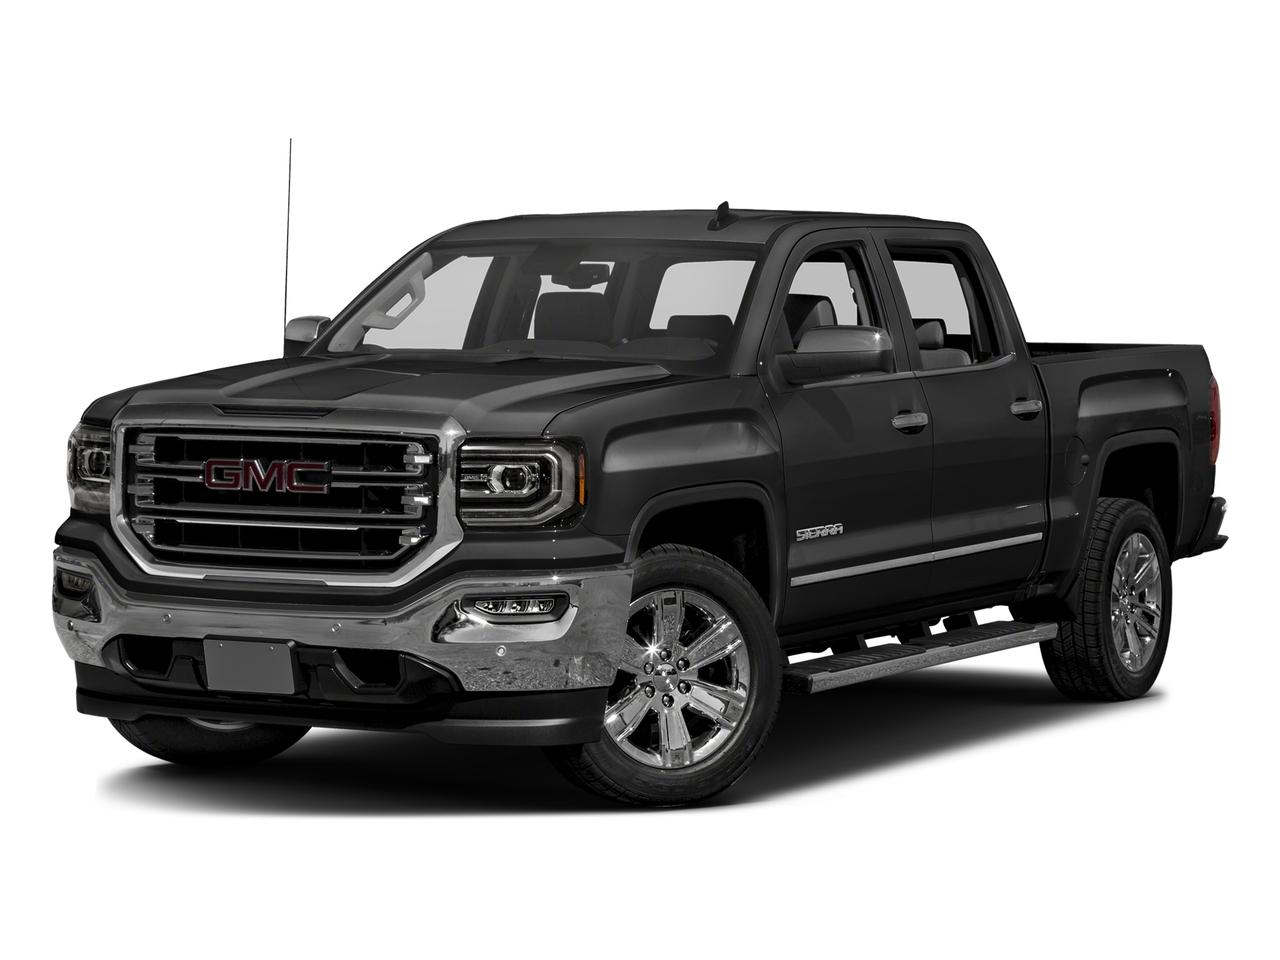 2017 GMC Sierra 1500 Vehicle Photo in Terryville, CT 06786